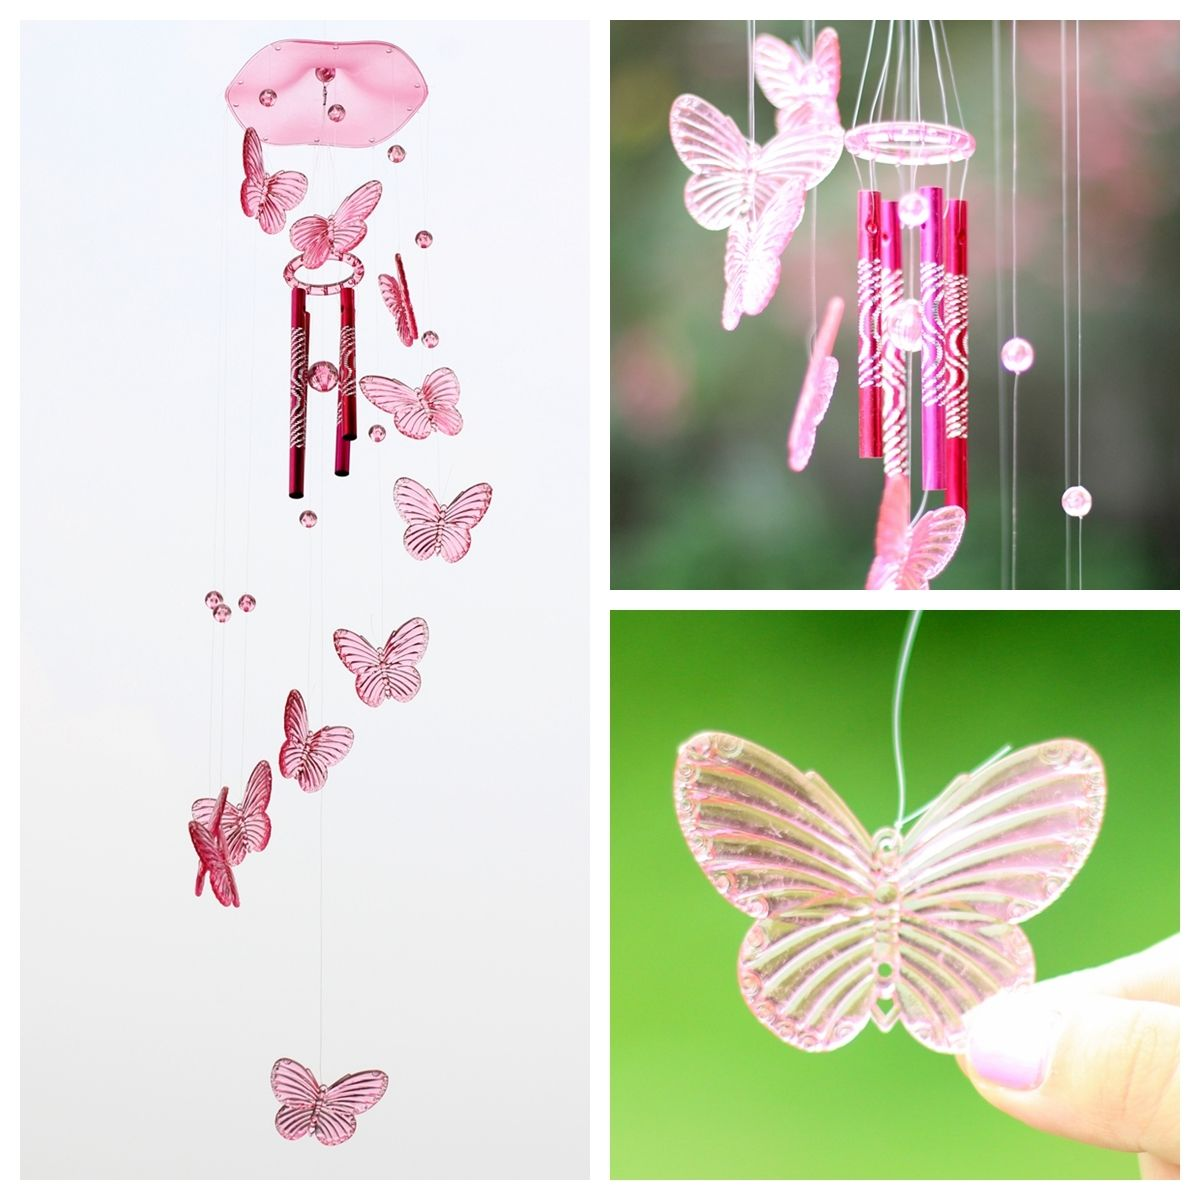 for Home Garden Window Decor Birthday Festivals Gift Stained Glass Hanging Ornament FBBULES Butterfly Wind Chimes with Bell